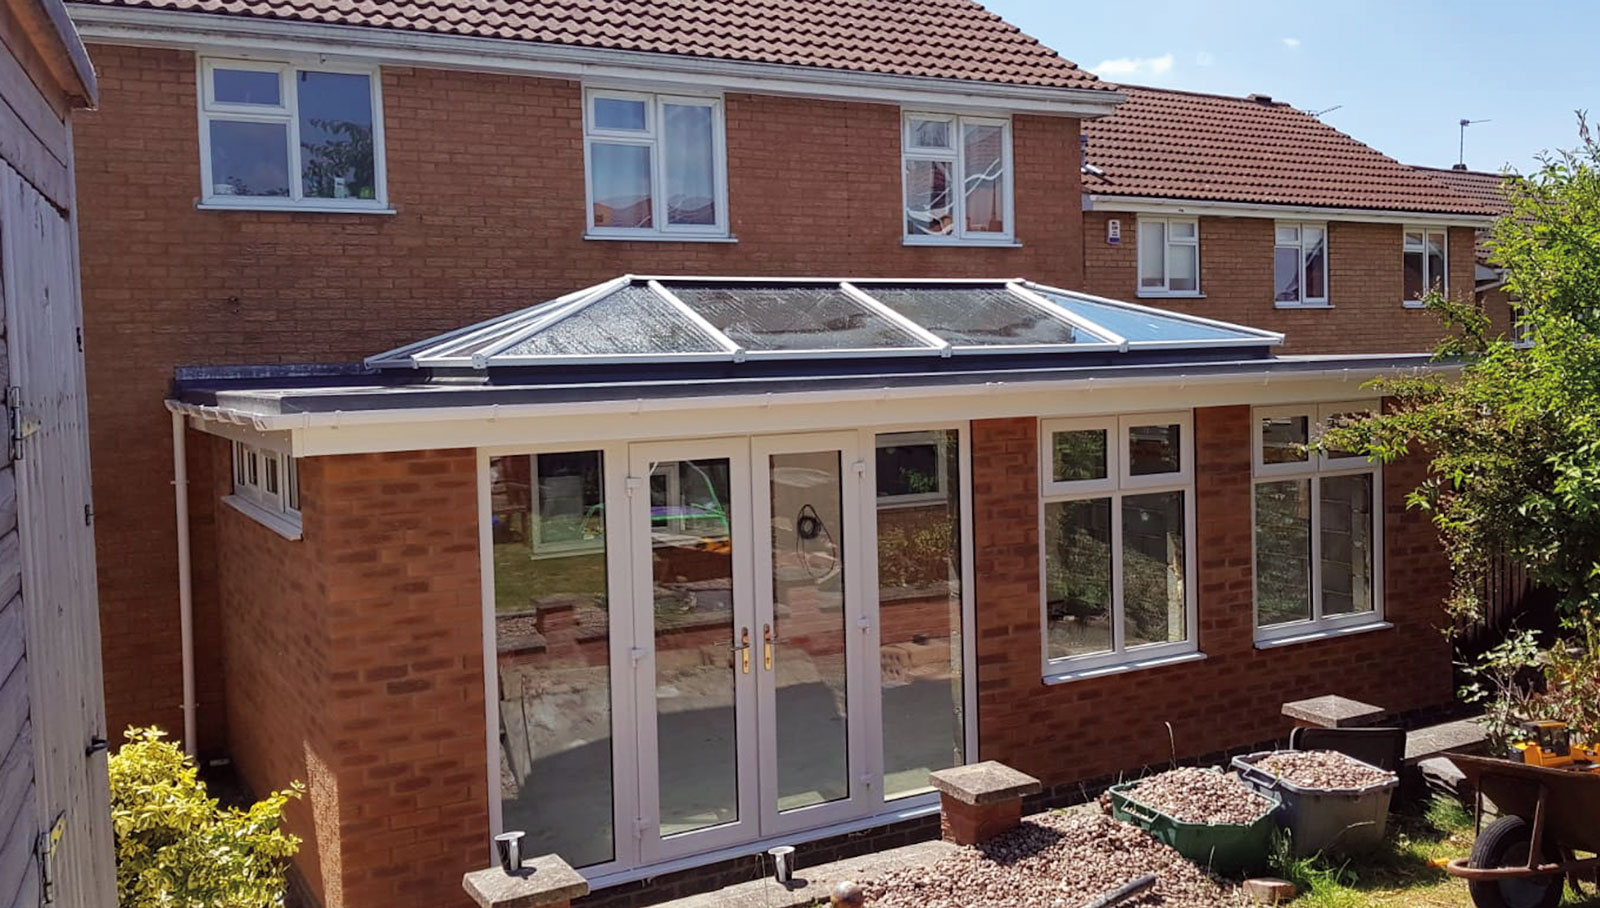 Warmglaze Conservatory with canopy roof